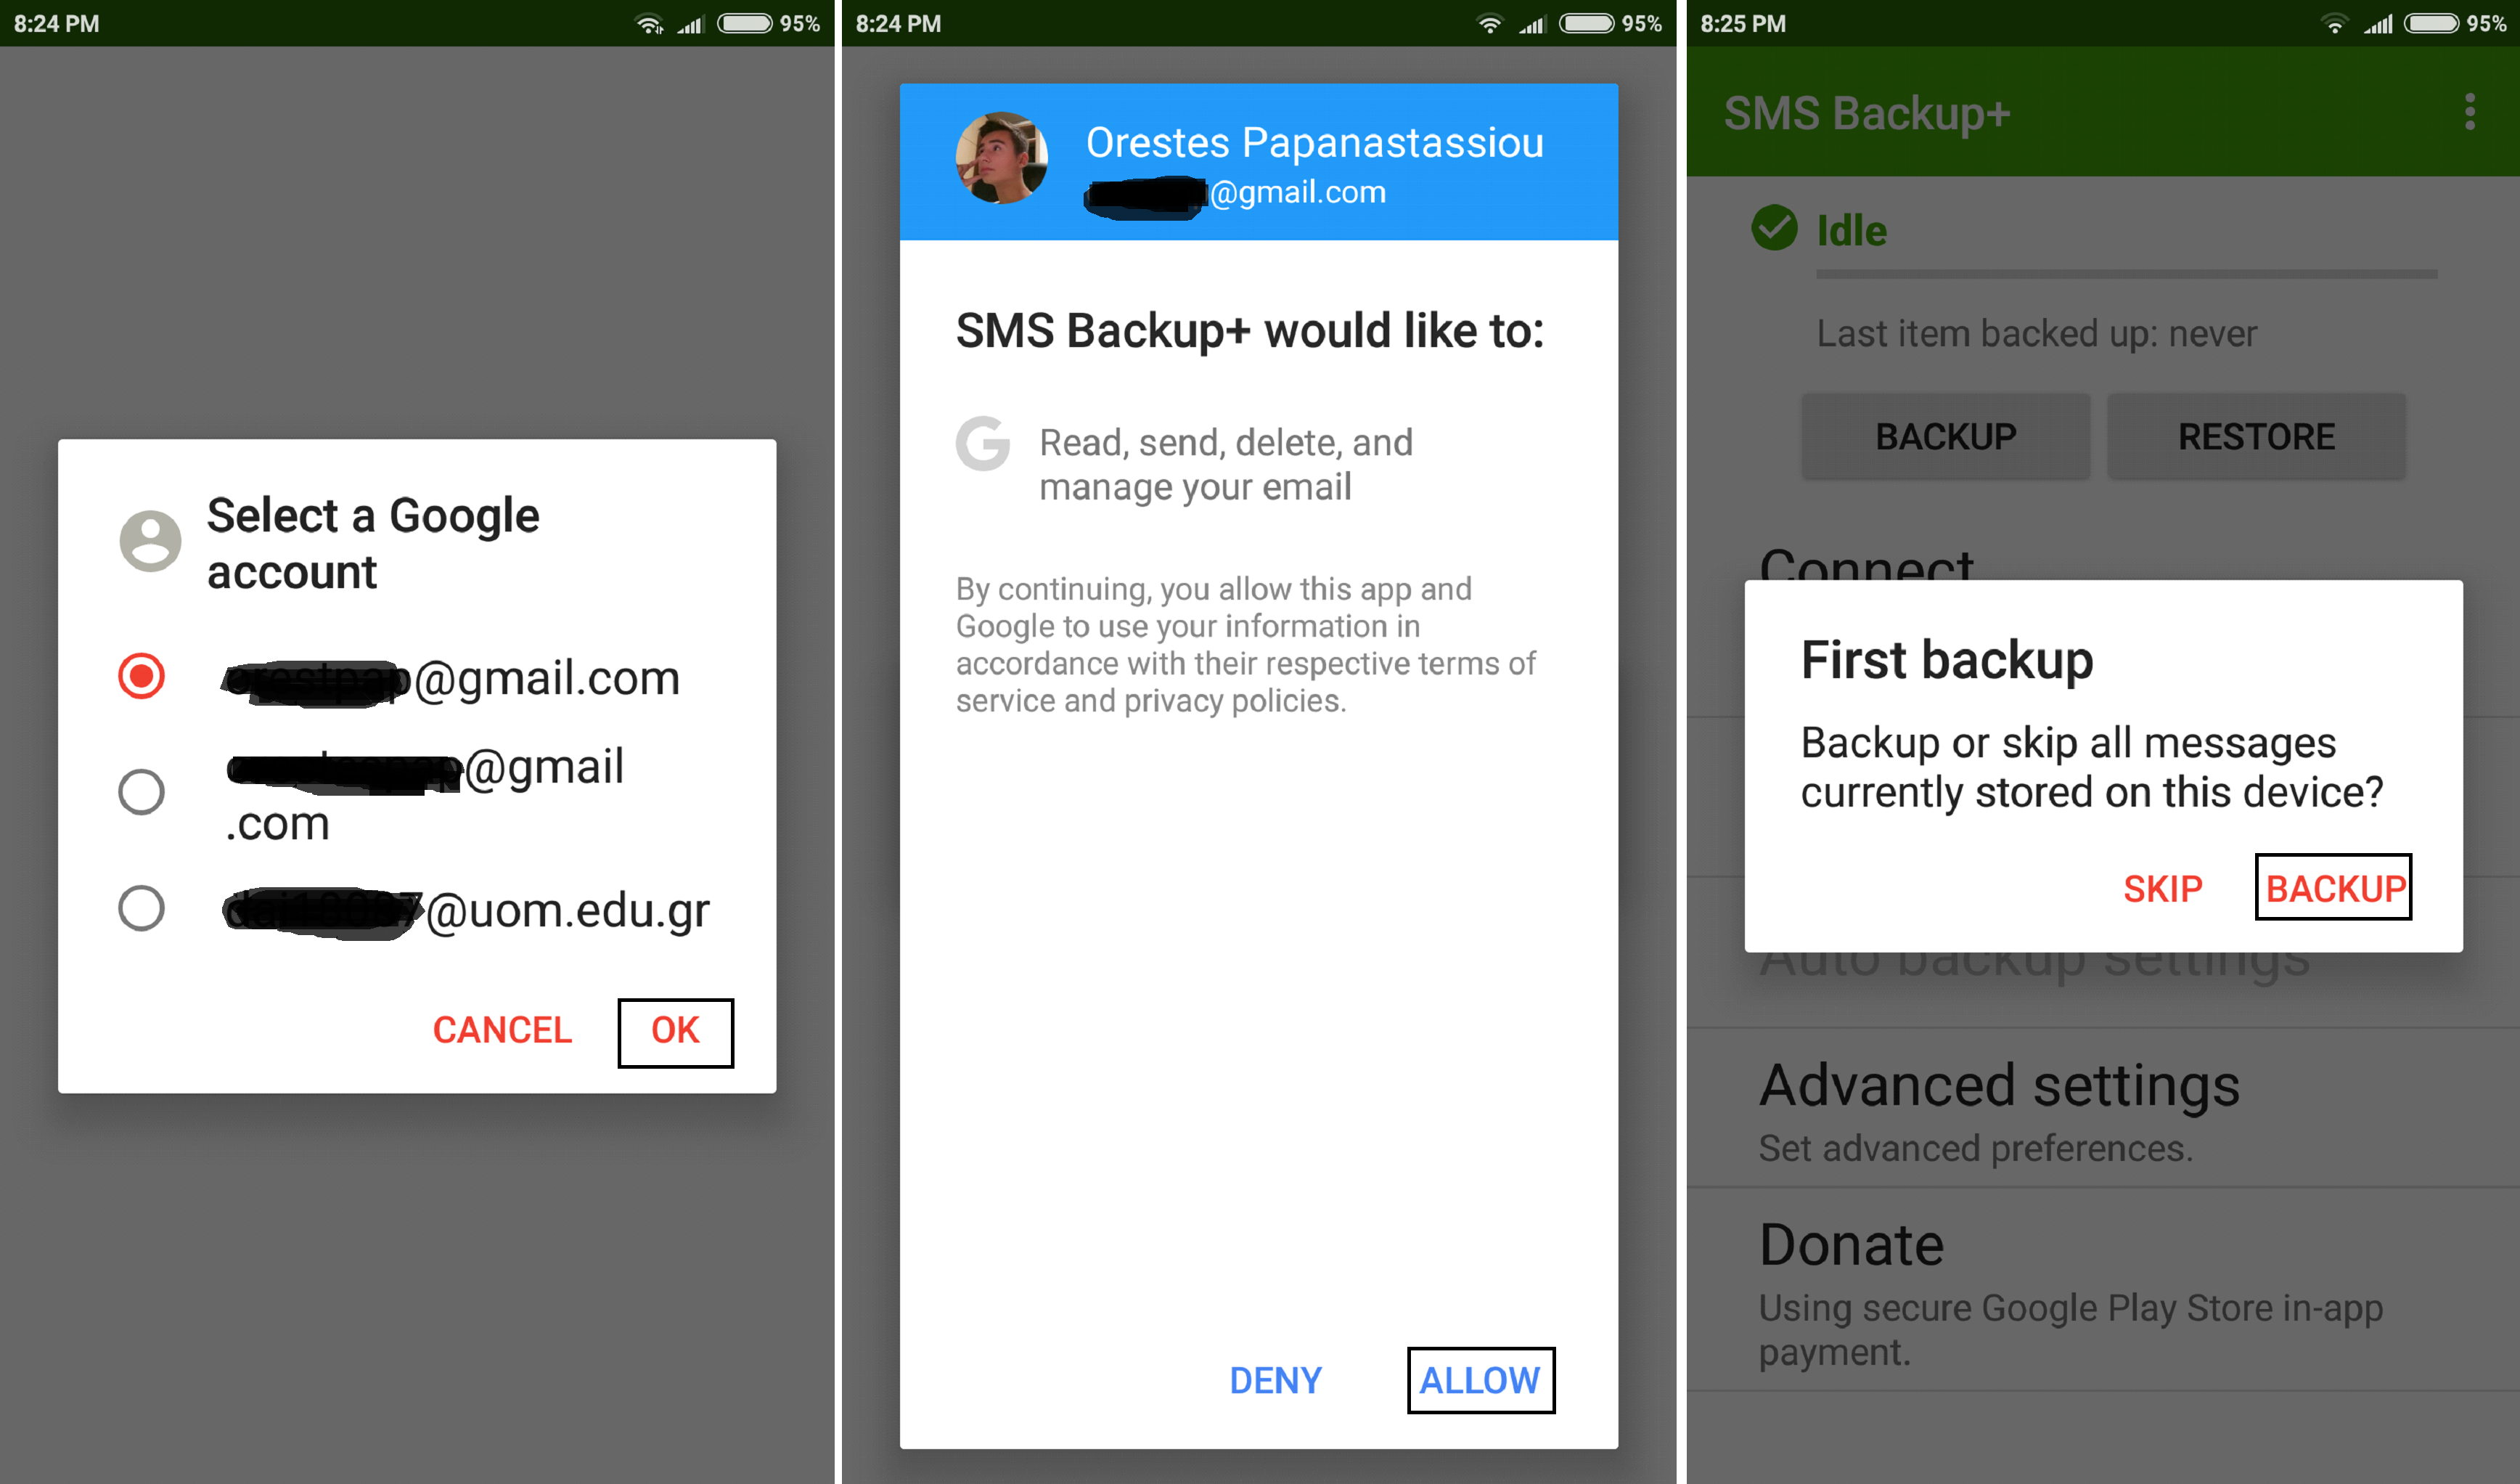 - a2 - How To Backup Text Messages From Android To Gmail